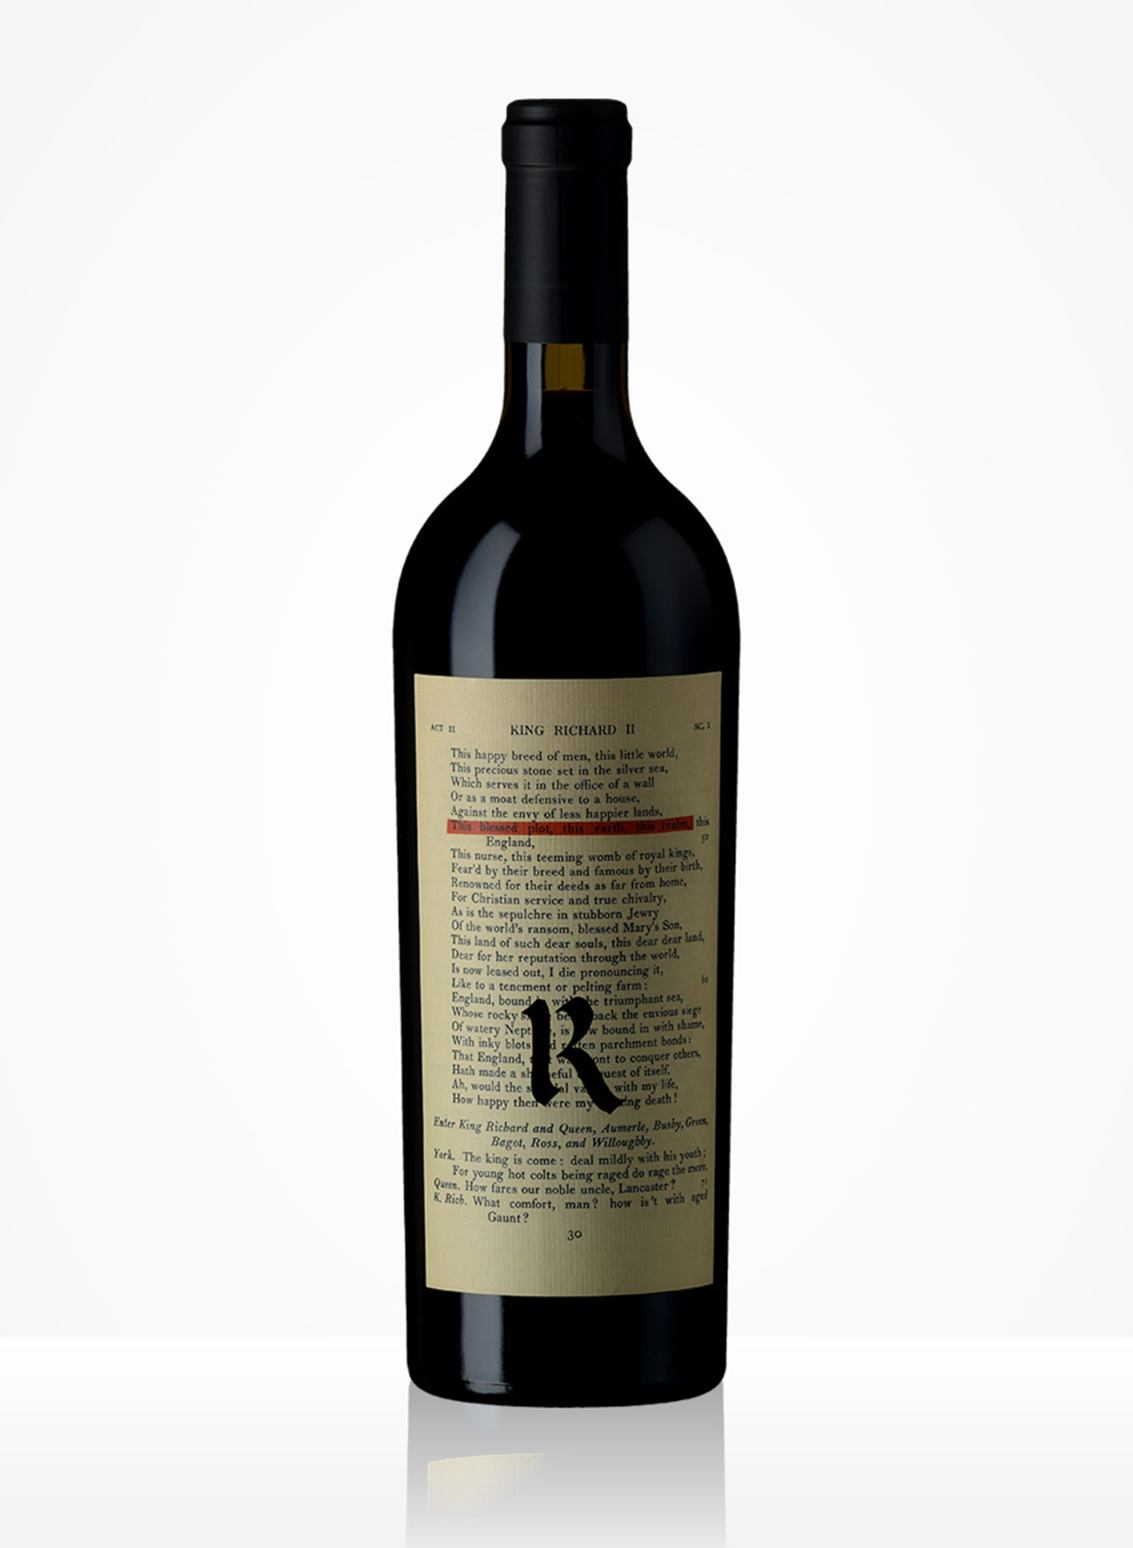 Cabernet Sauvignon, The Bard, 